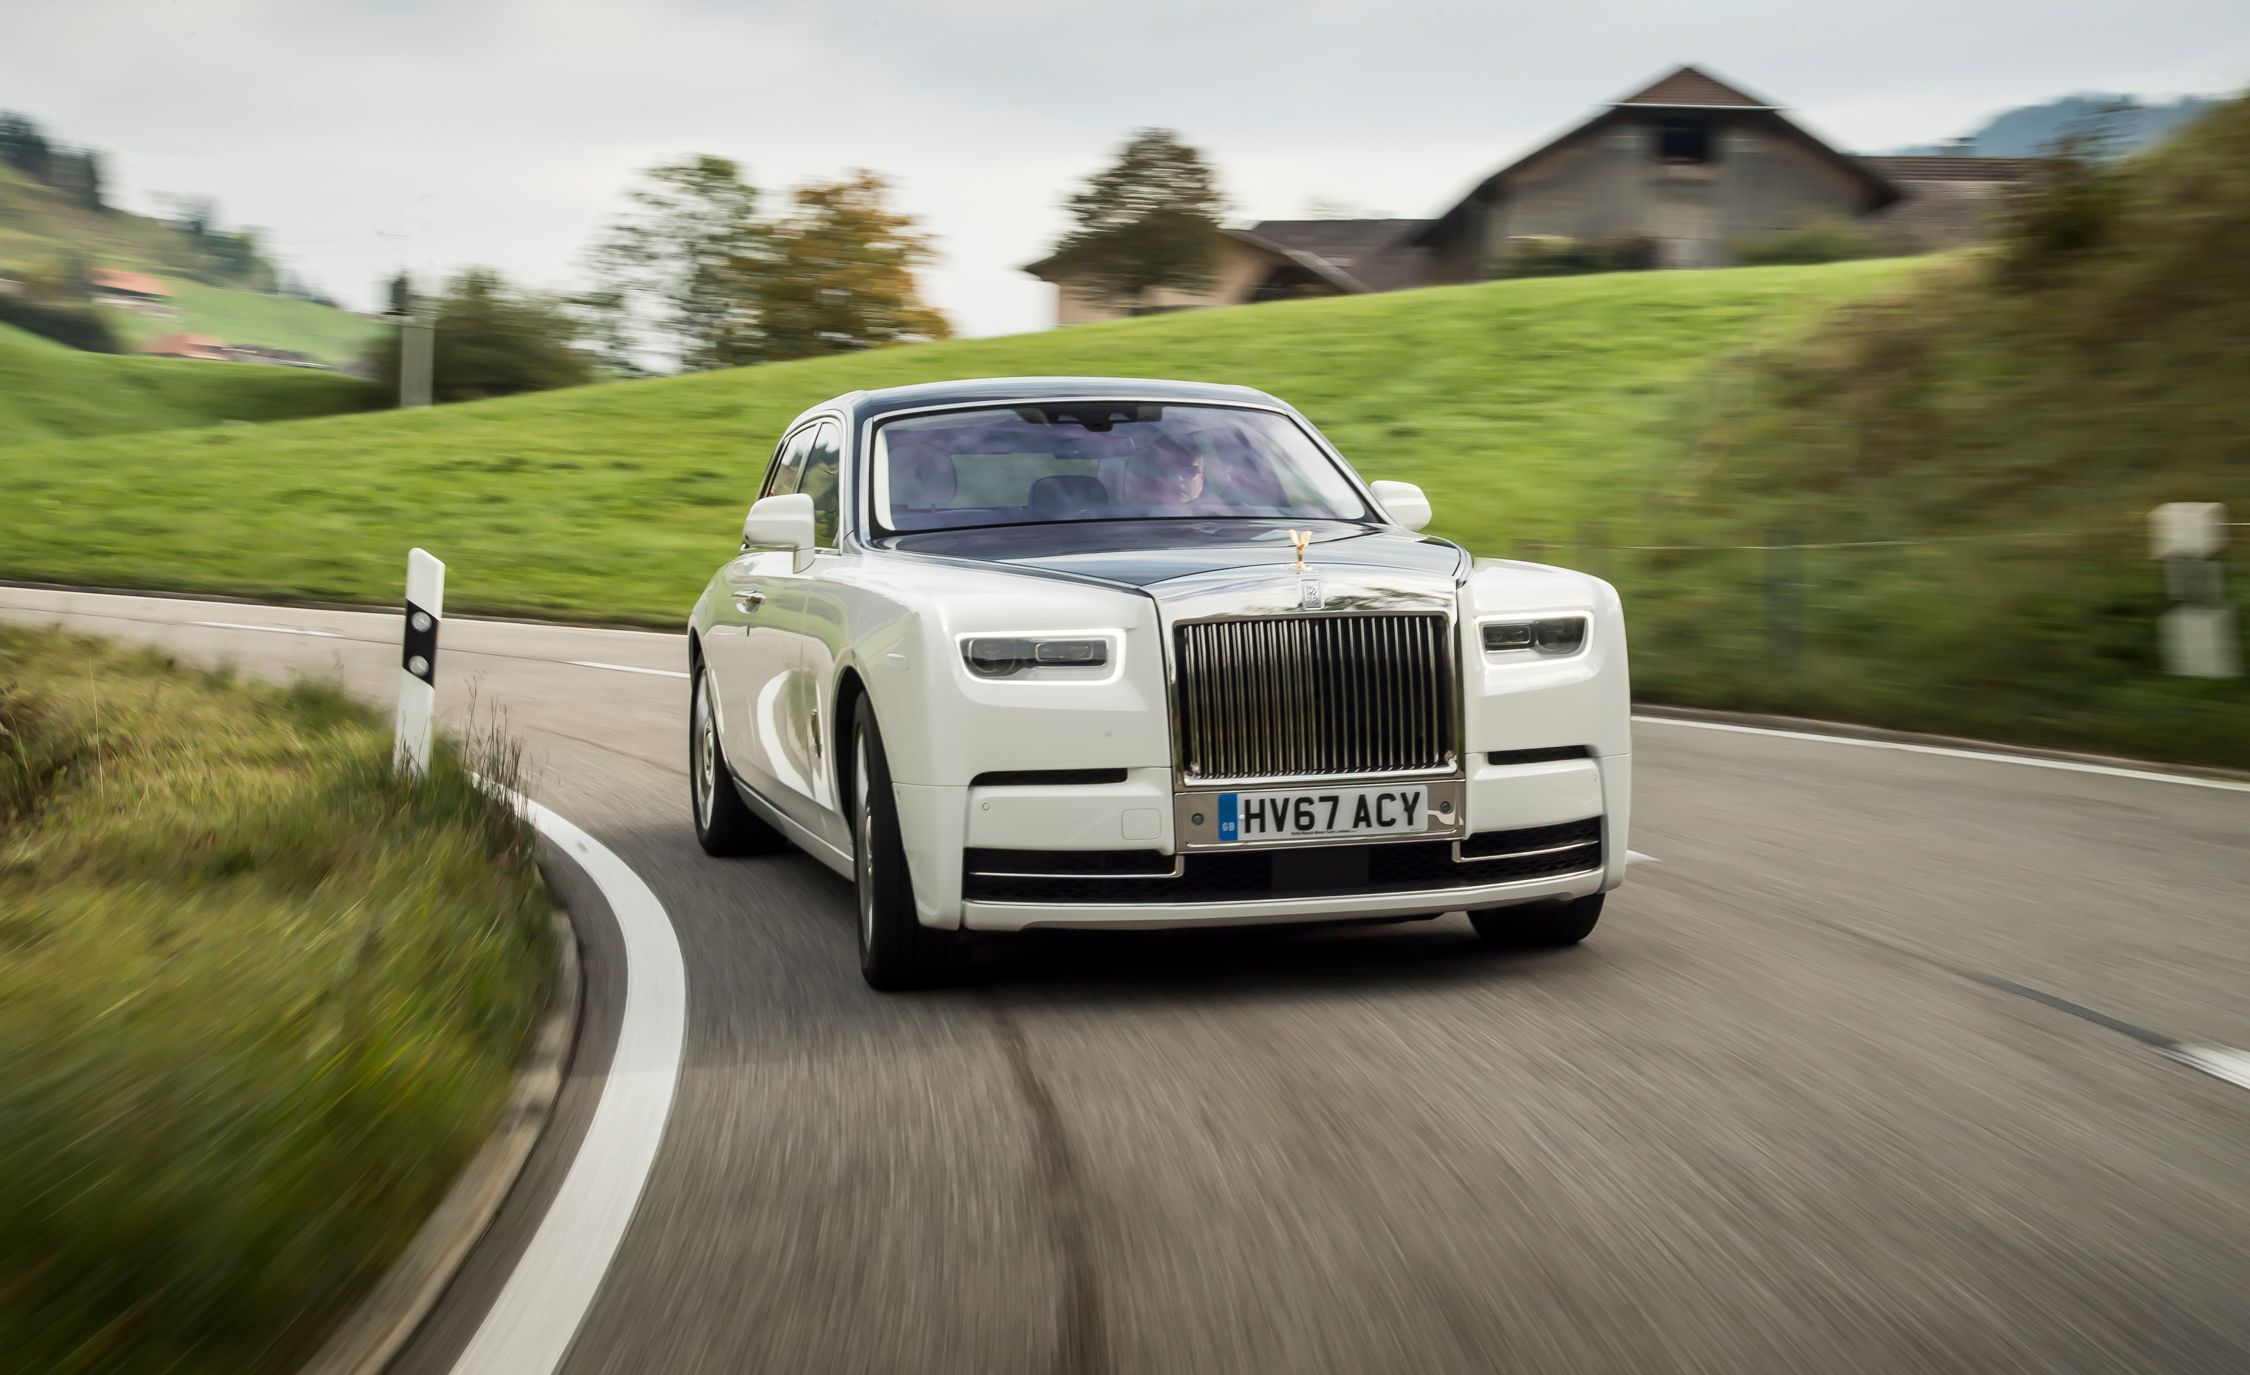 Rolls-Royce Phantom Reviews | Rolls-Royce Phantom Price, Photos, and